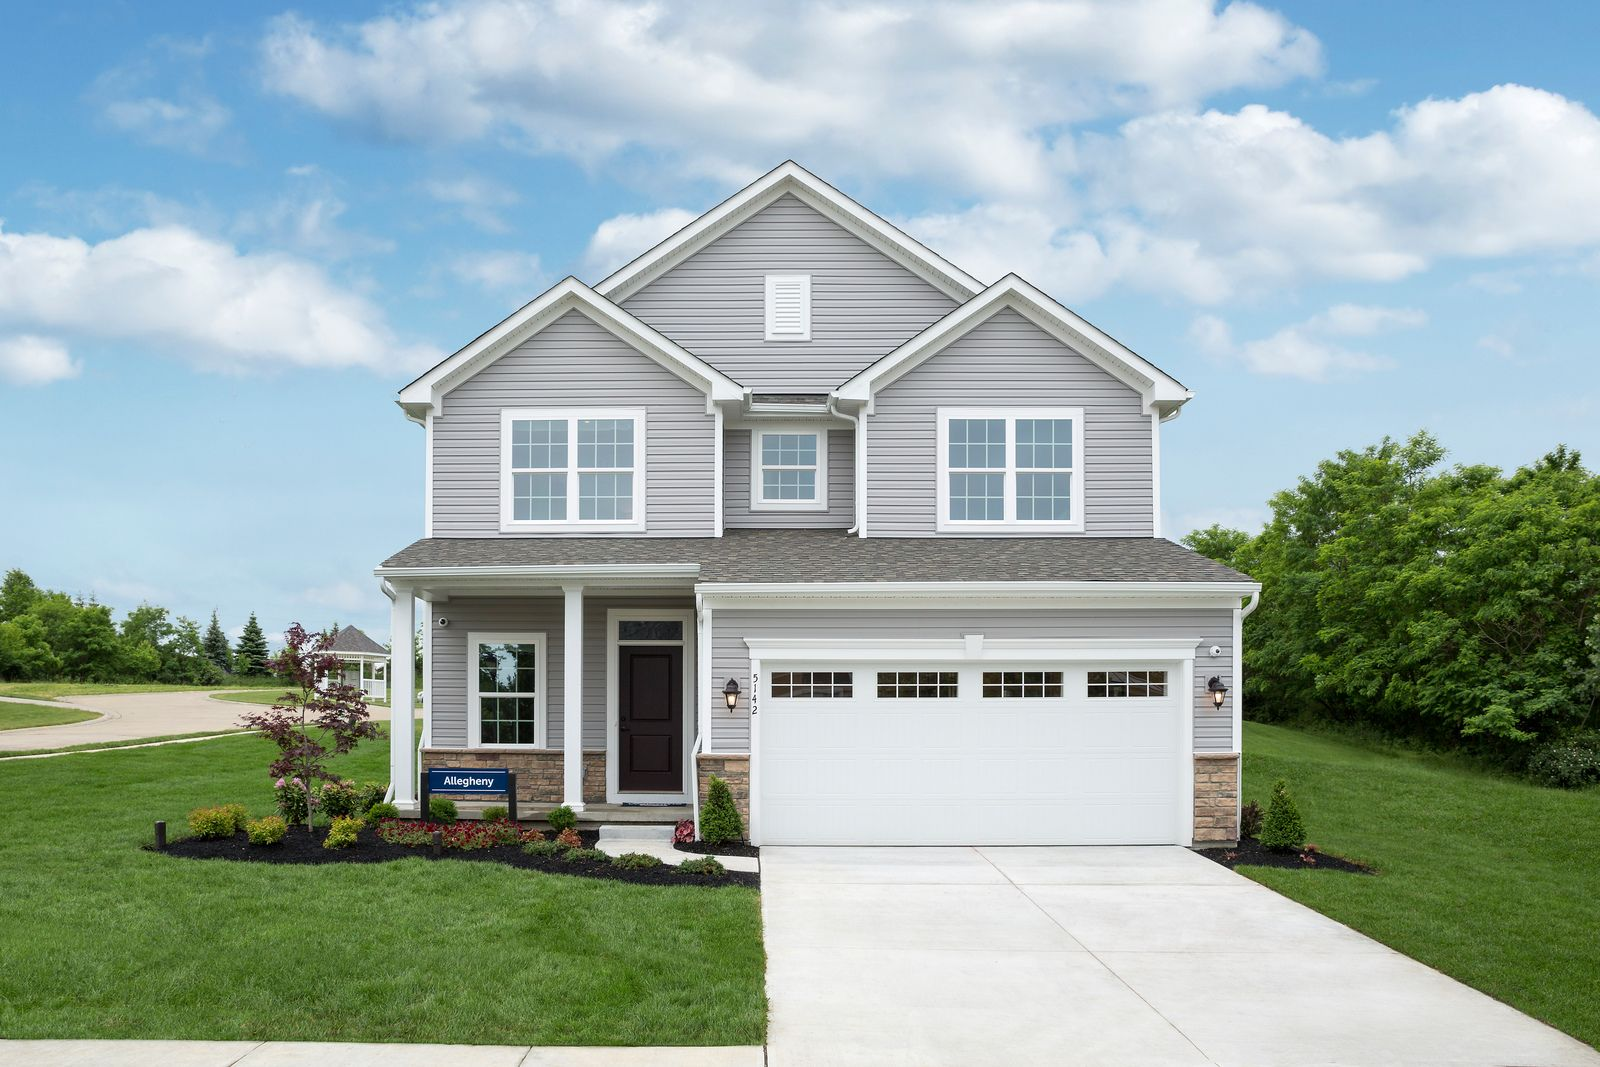 Welcome to Heron Ponds:Only new single-family homes in Delmar, MD with no yearly fees. Ranch and traditional homes on wooded homesites just minutes from Salisbury.